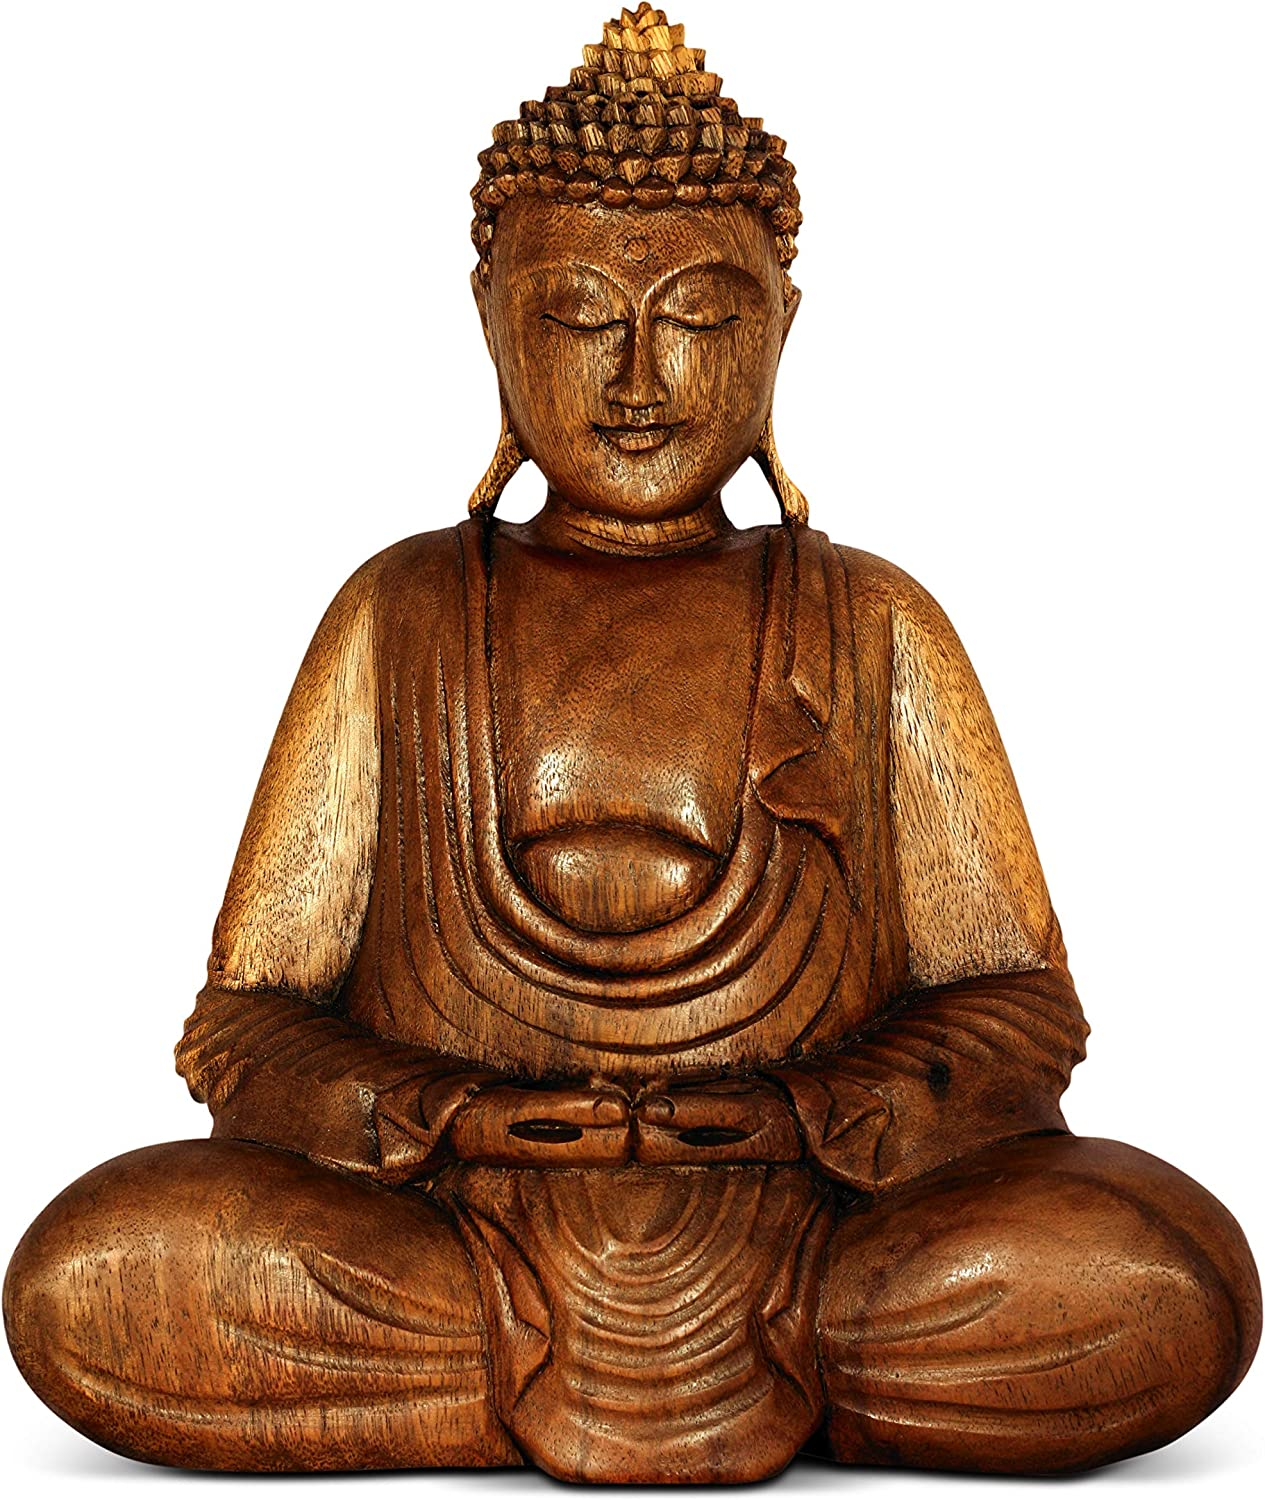 G6 COLLECTION Wooden Serene Sitting Buddha Statue Handmade Meditating Sculpture Wood Figurine Decorative Accent Handcrafted Traditional Modern Contemporary Oriental Decor Hands In Lap Buddha (8